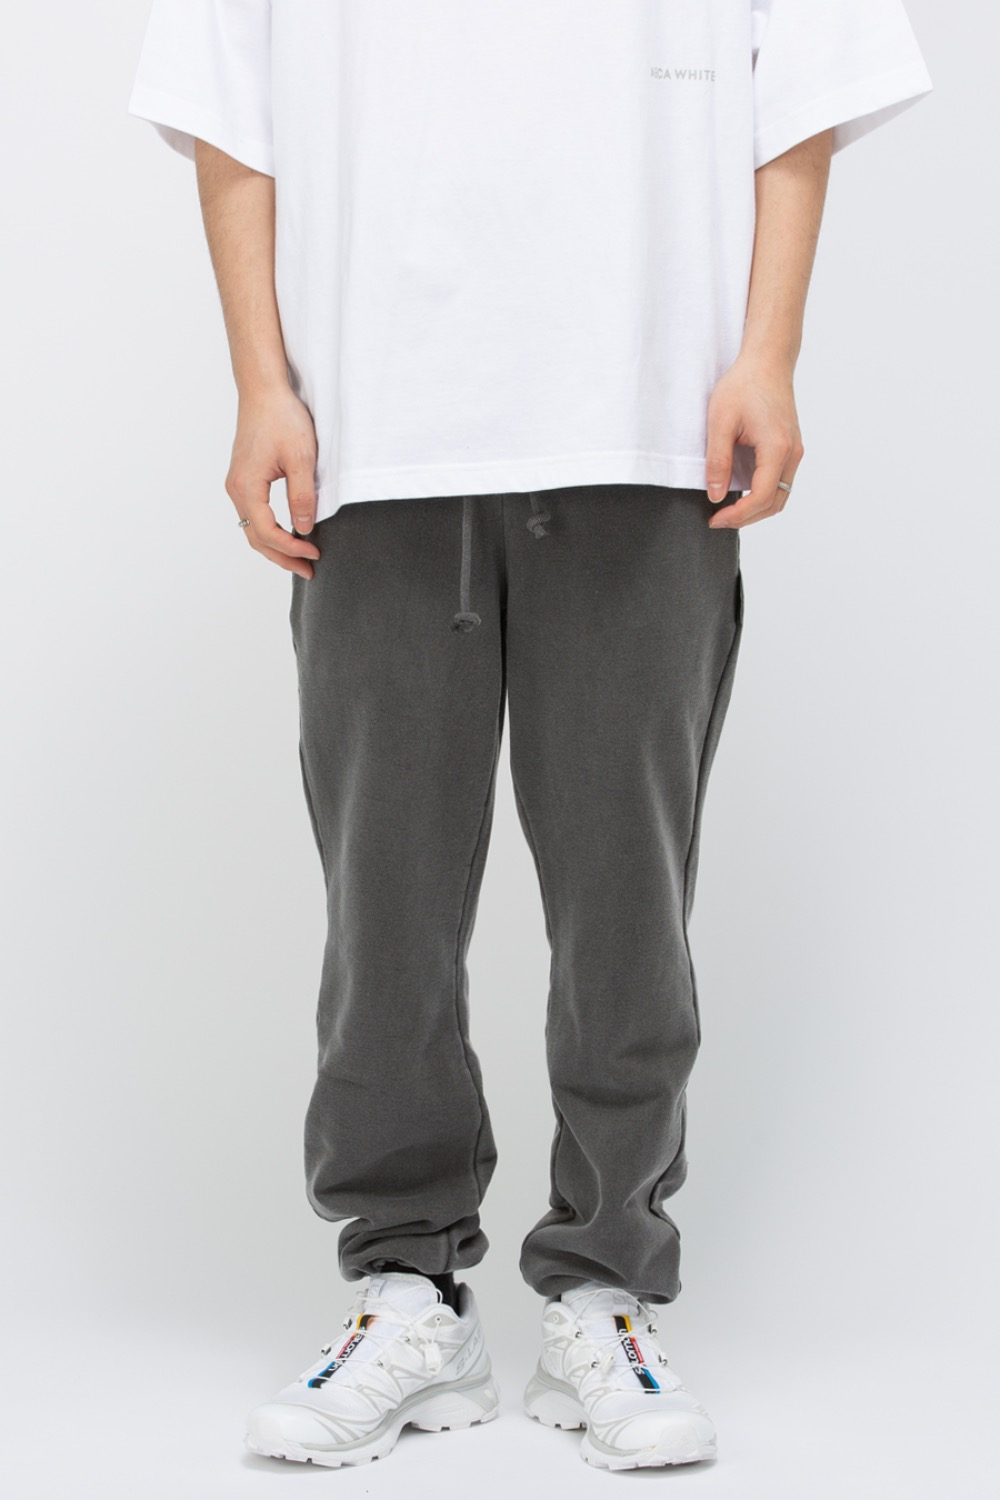 HEAVY WEIGHT CLASSIC SWEATPANTS WASHED(PREMIUM BASIC) CHARCOAL